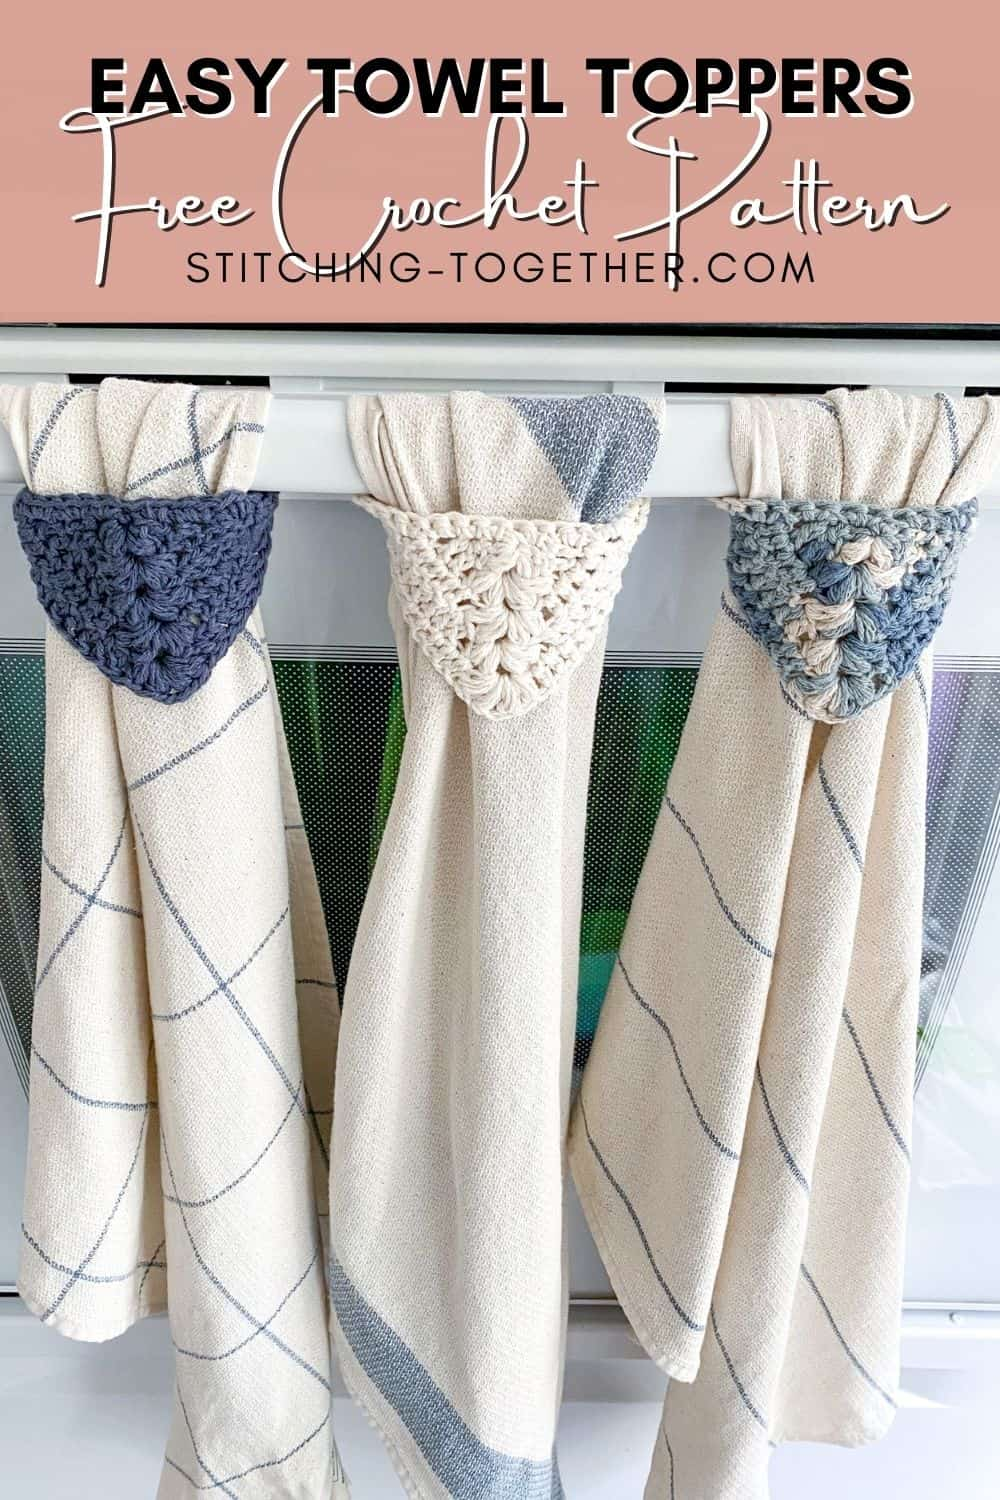 pin image of 3 hanging kitchen towels with crochet toppers